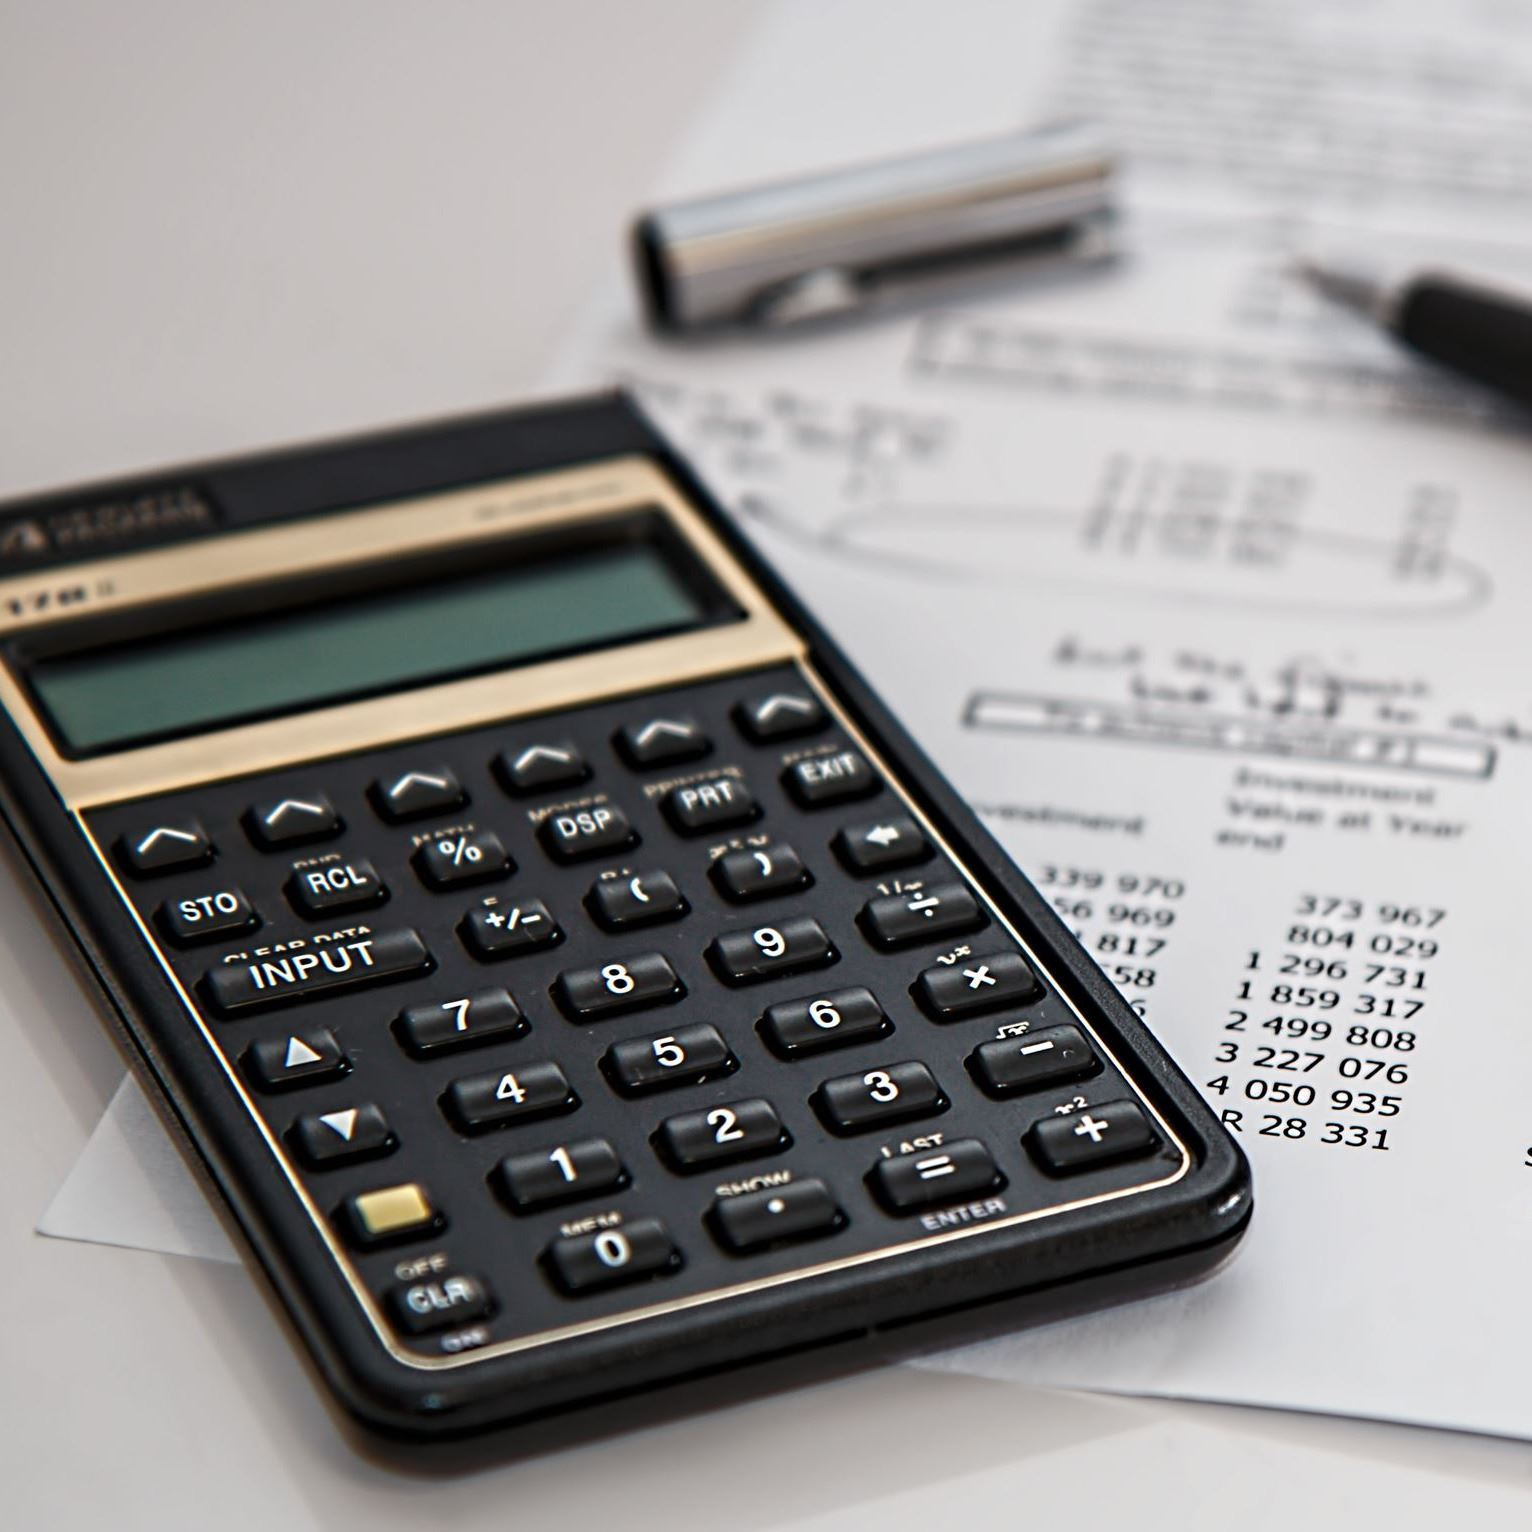 Calculator and pen on top of financial document